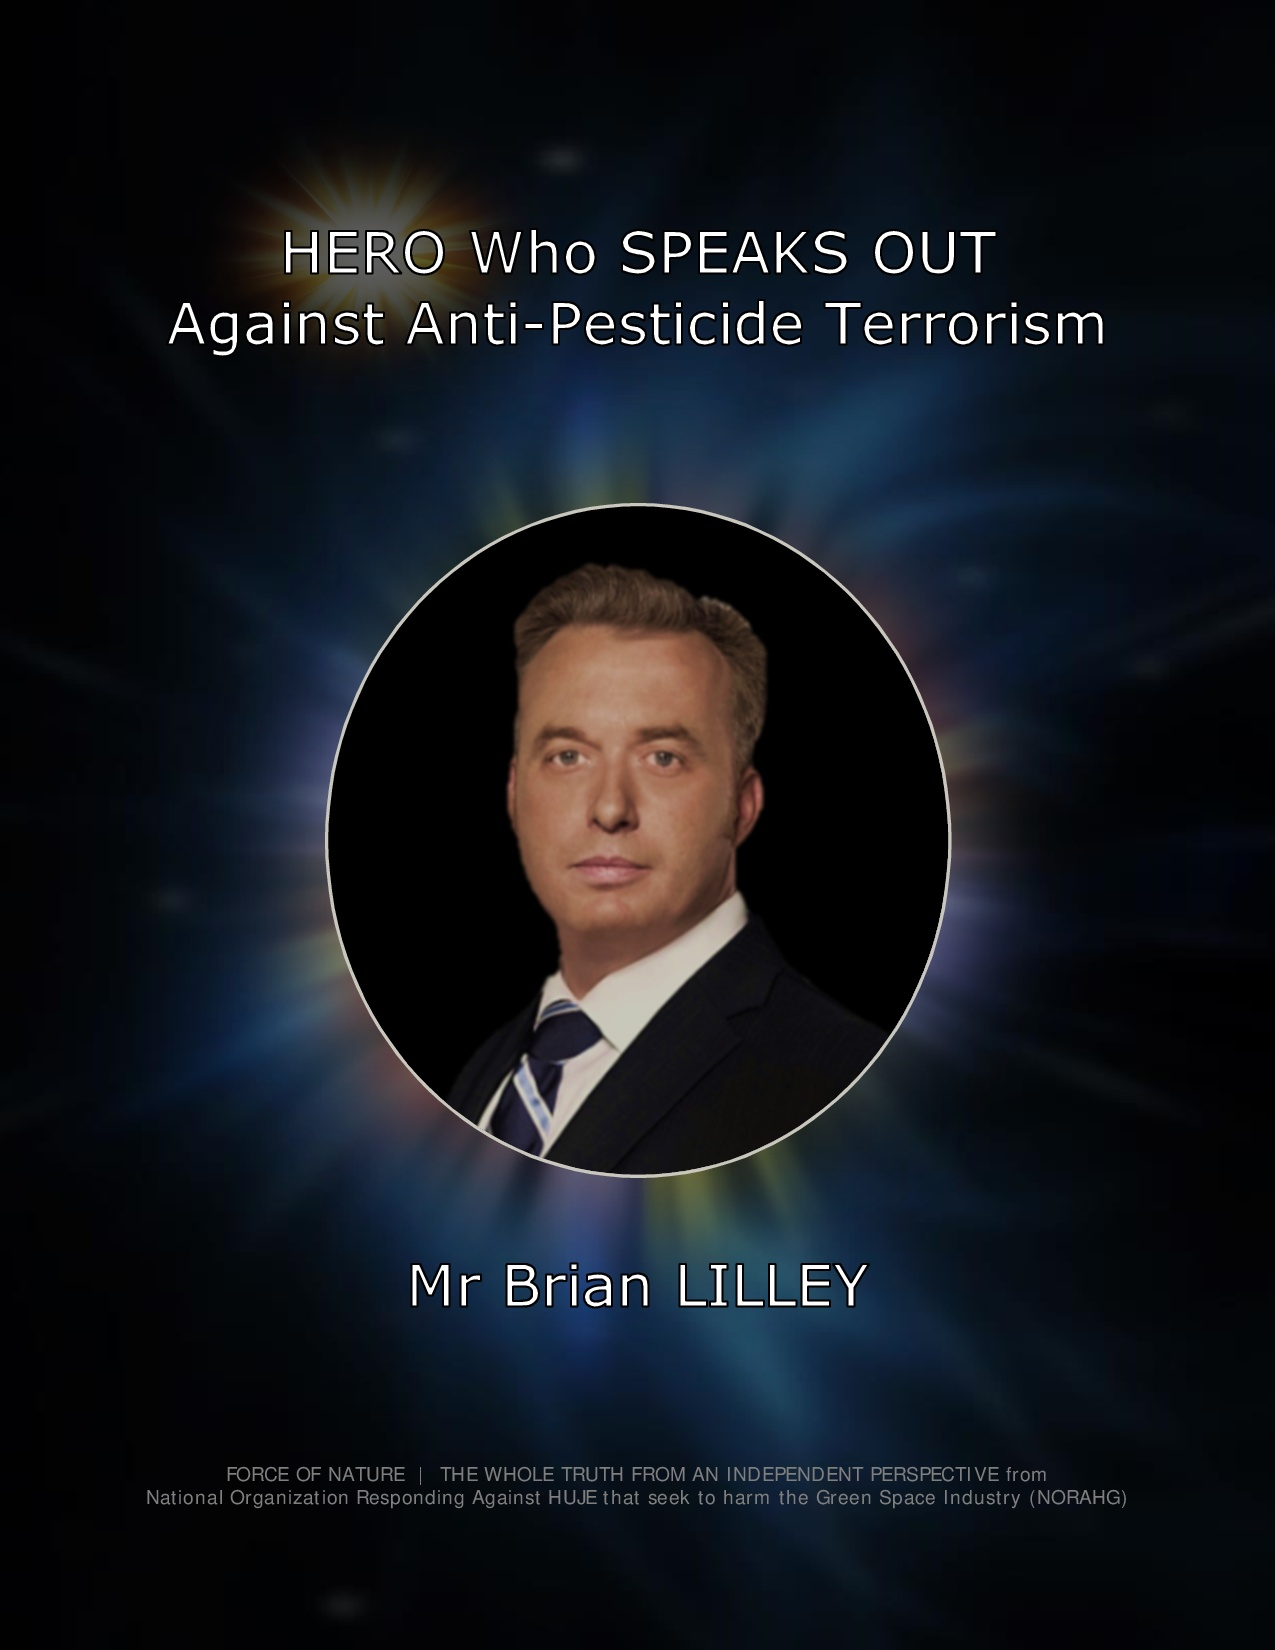 LILLEY, Mr Brian